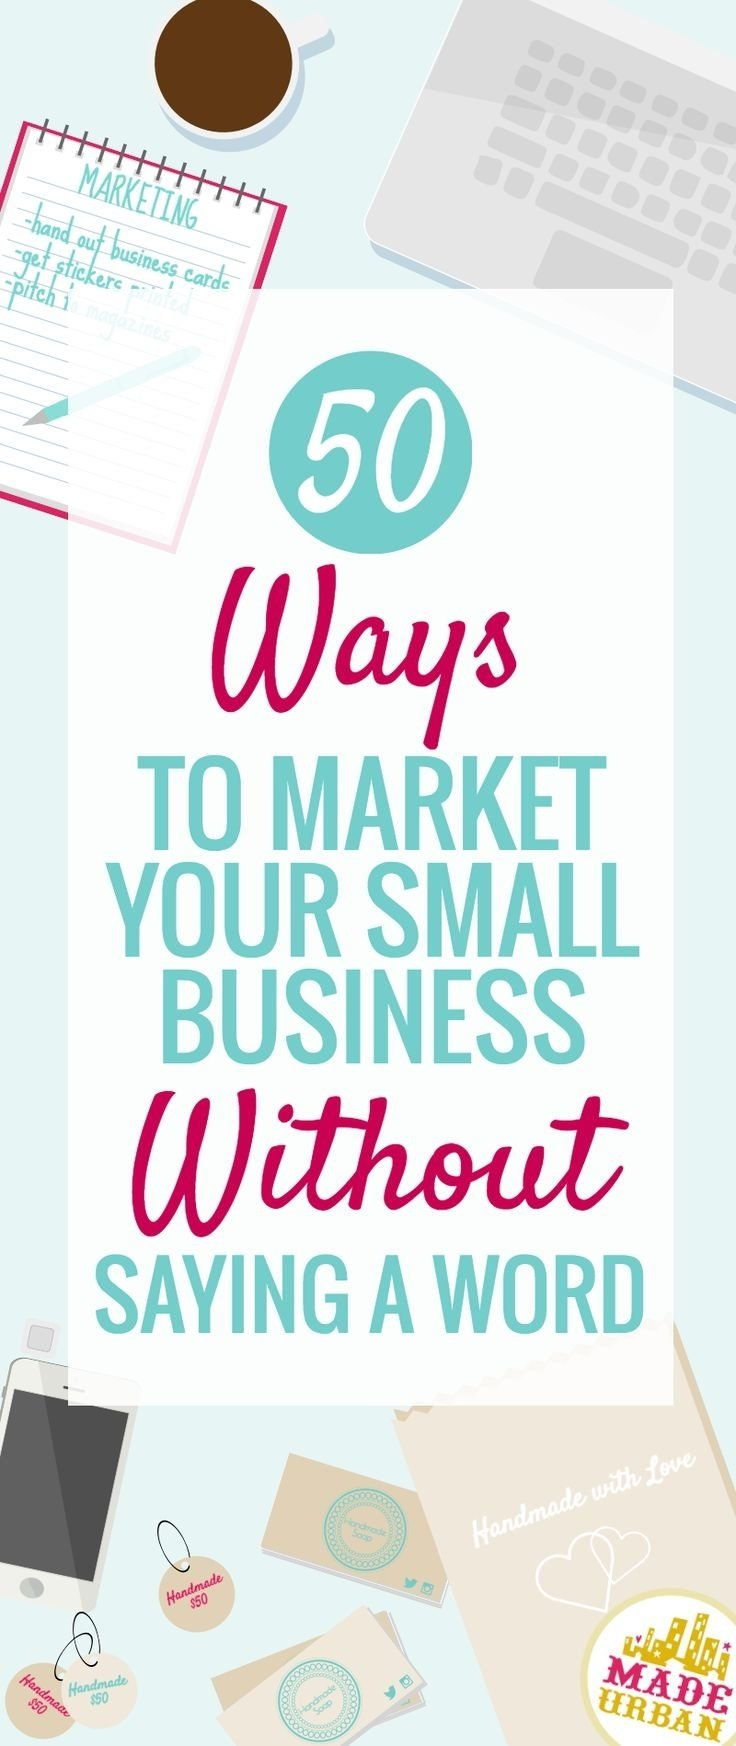 10 Gorgeous Marketing Ideas For Small Business 306 best visual marketing images on pinterest business 1 2021